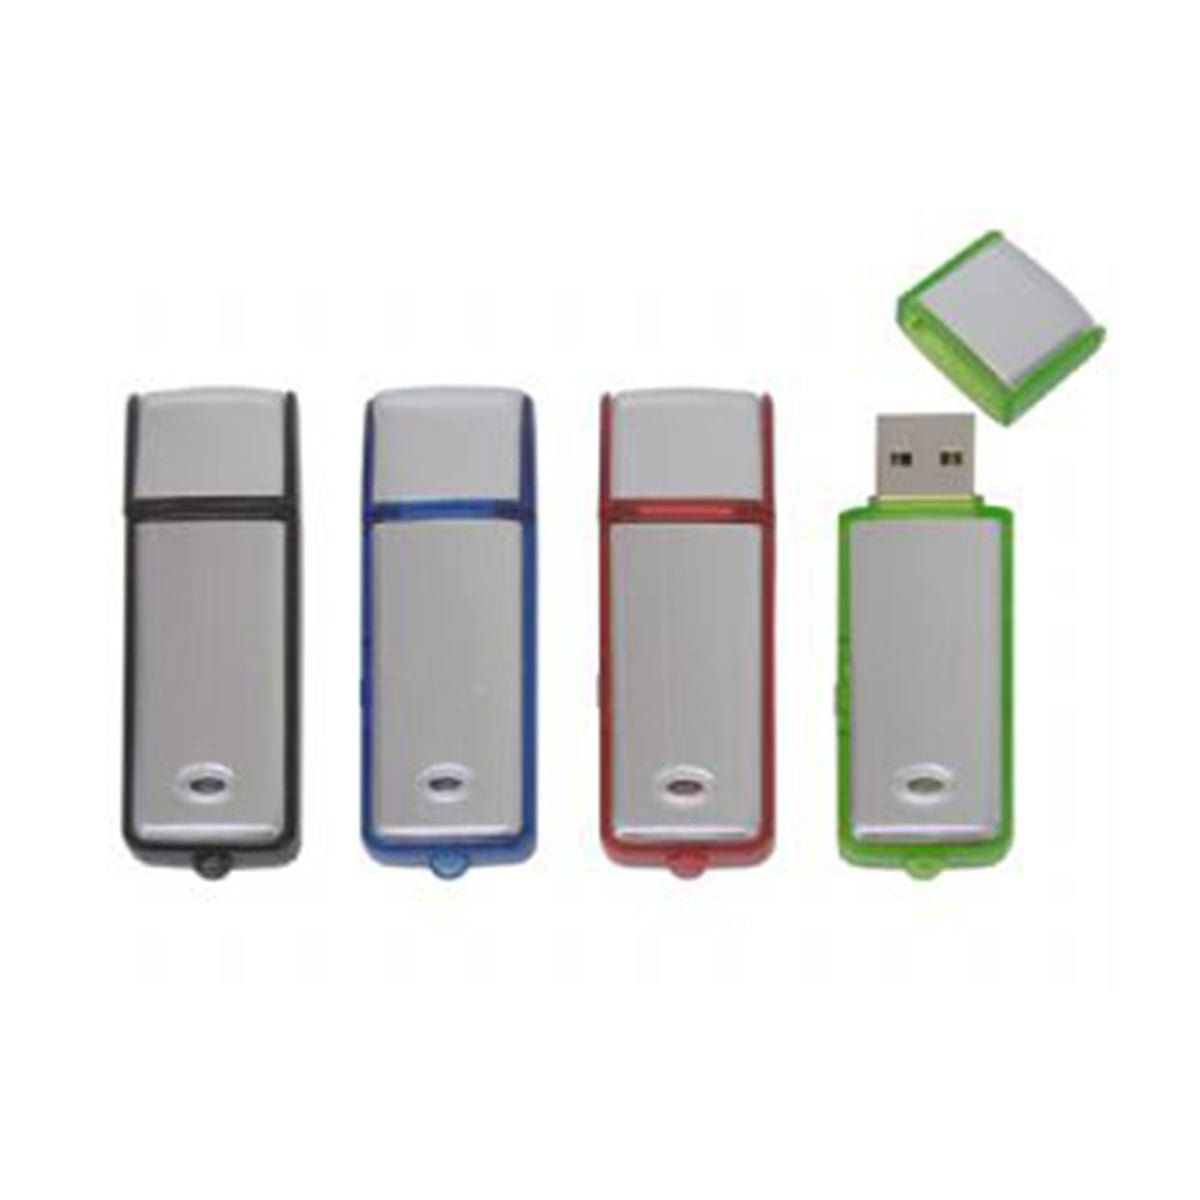 Classic USB Flash Drive-Available in 3 Colours.